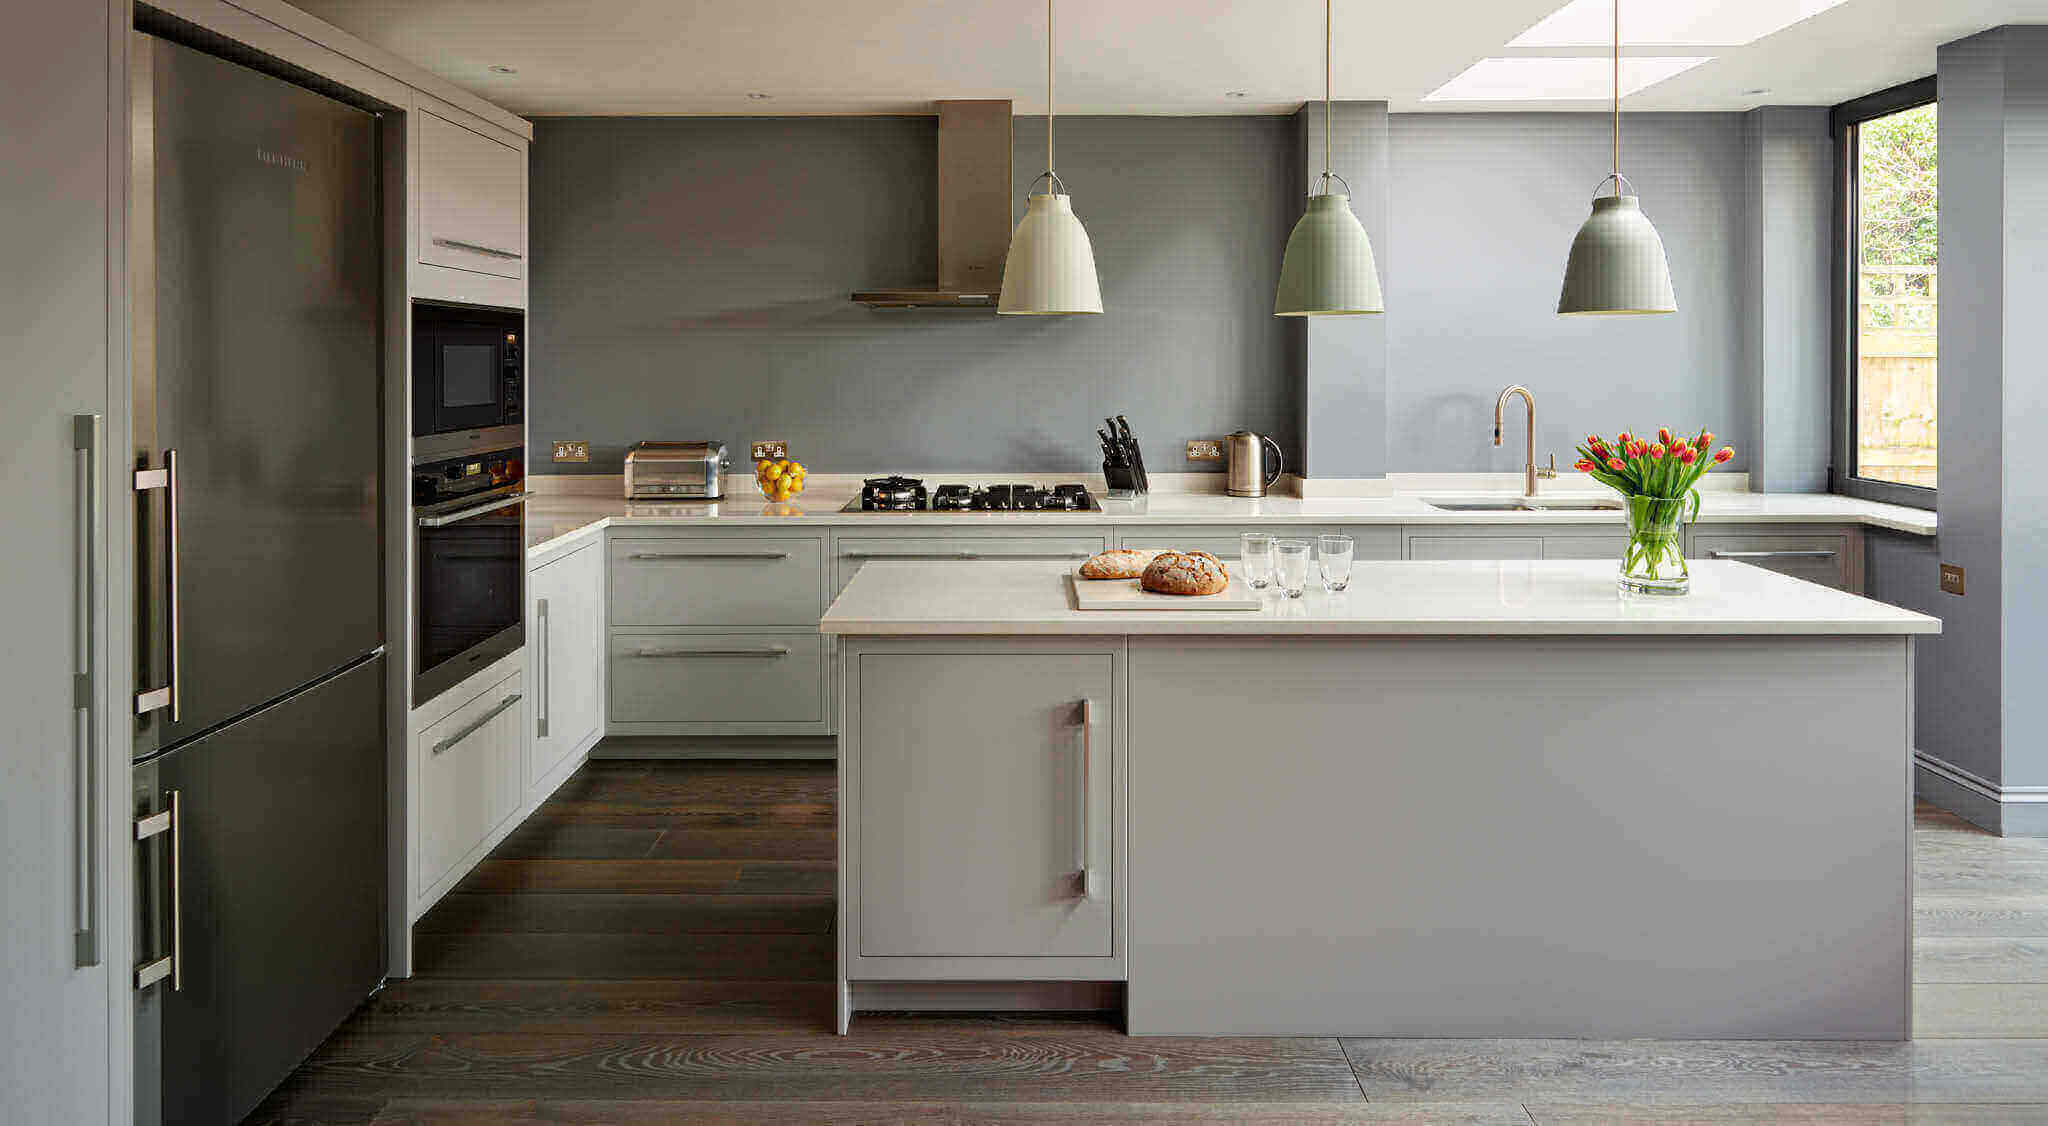 Linear Kitchen In Shades Of Grey